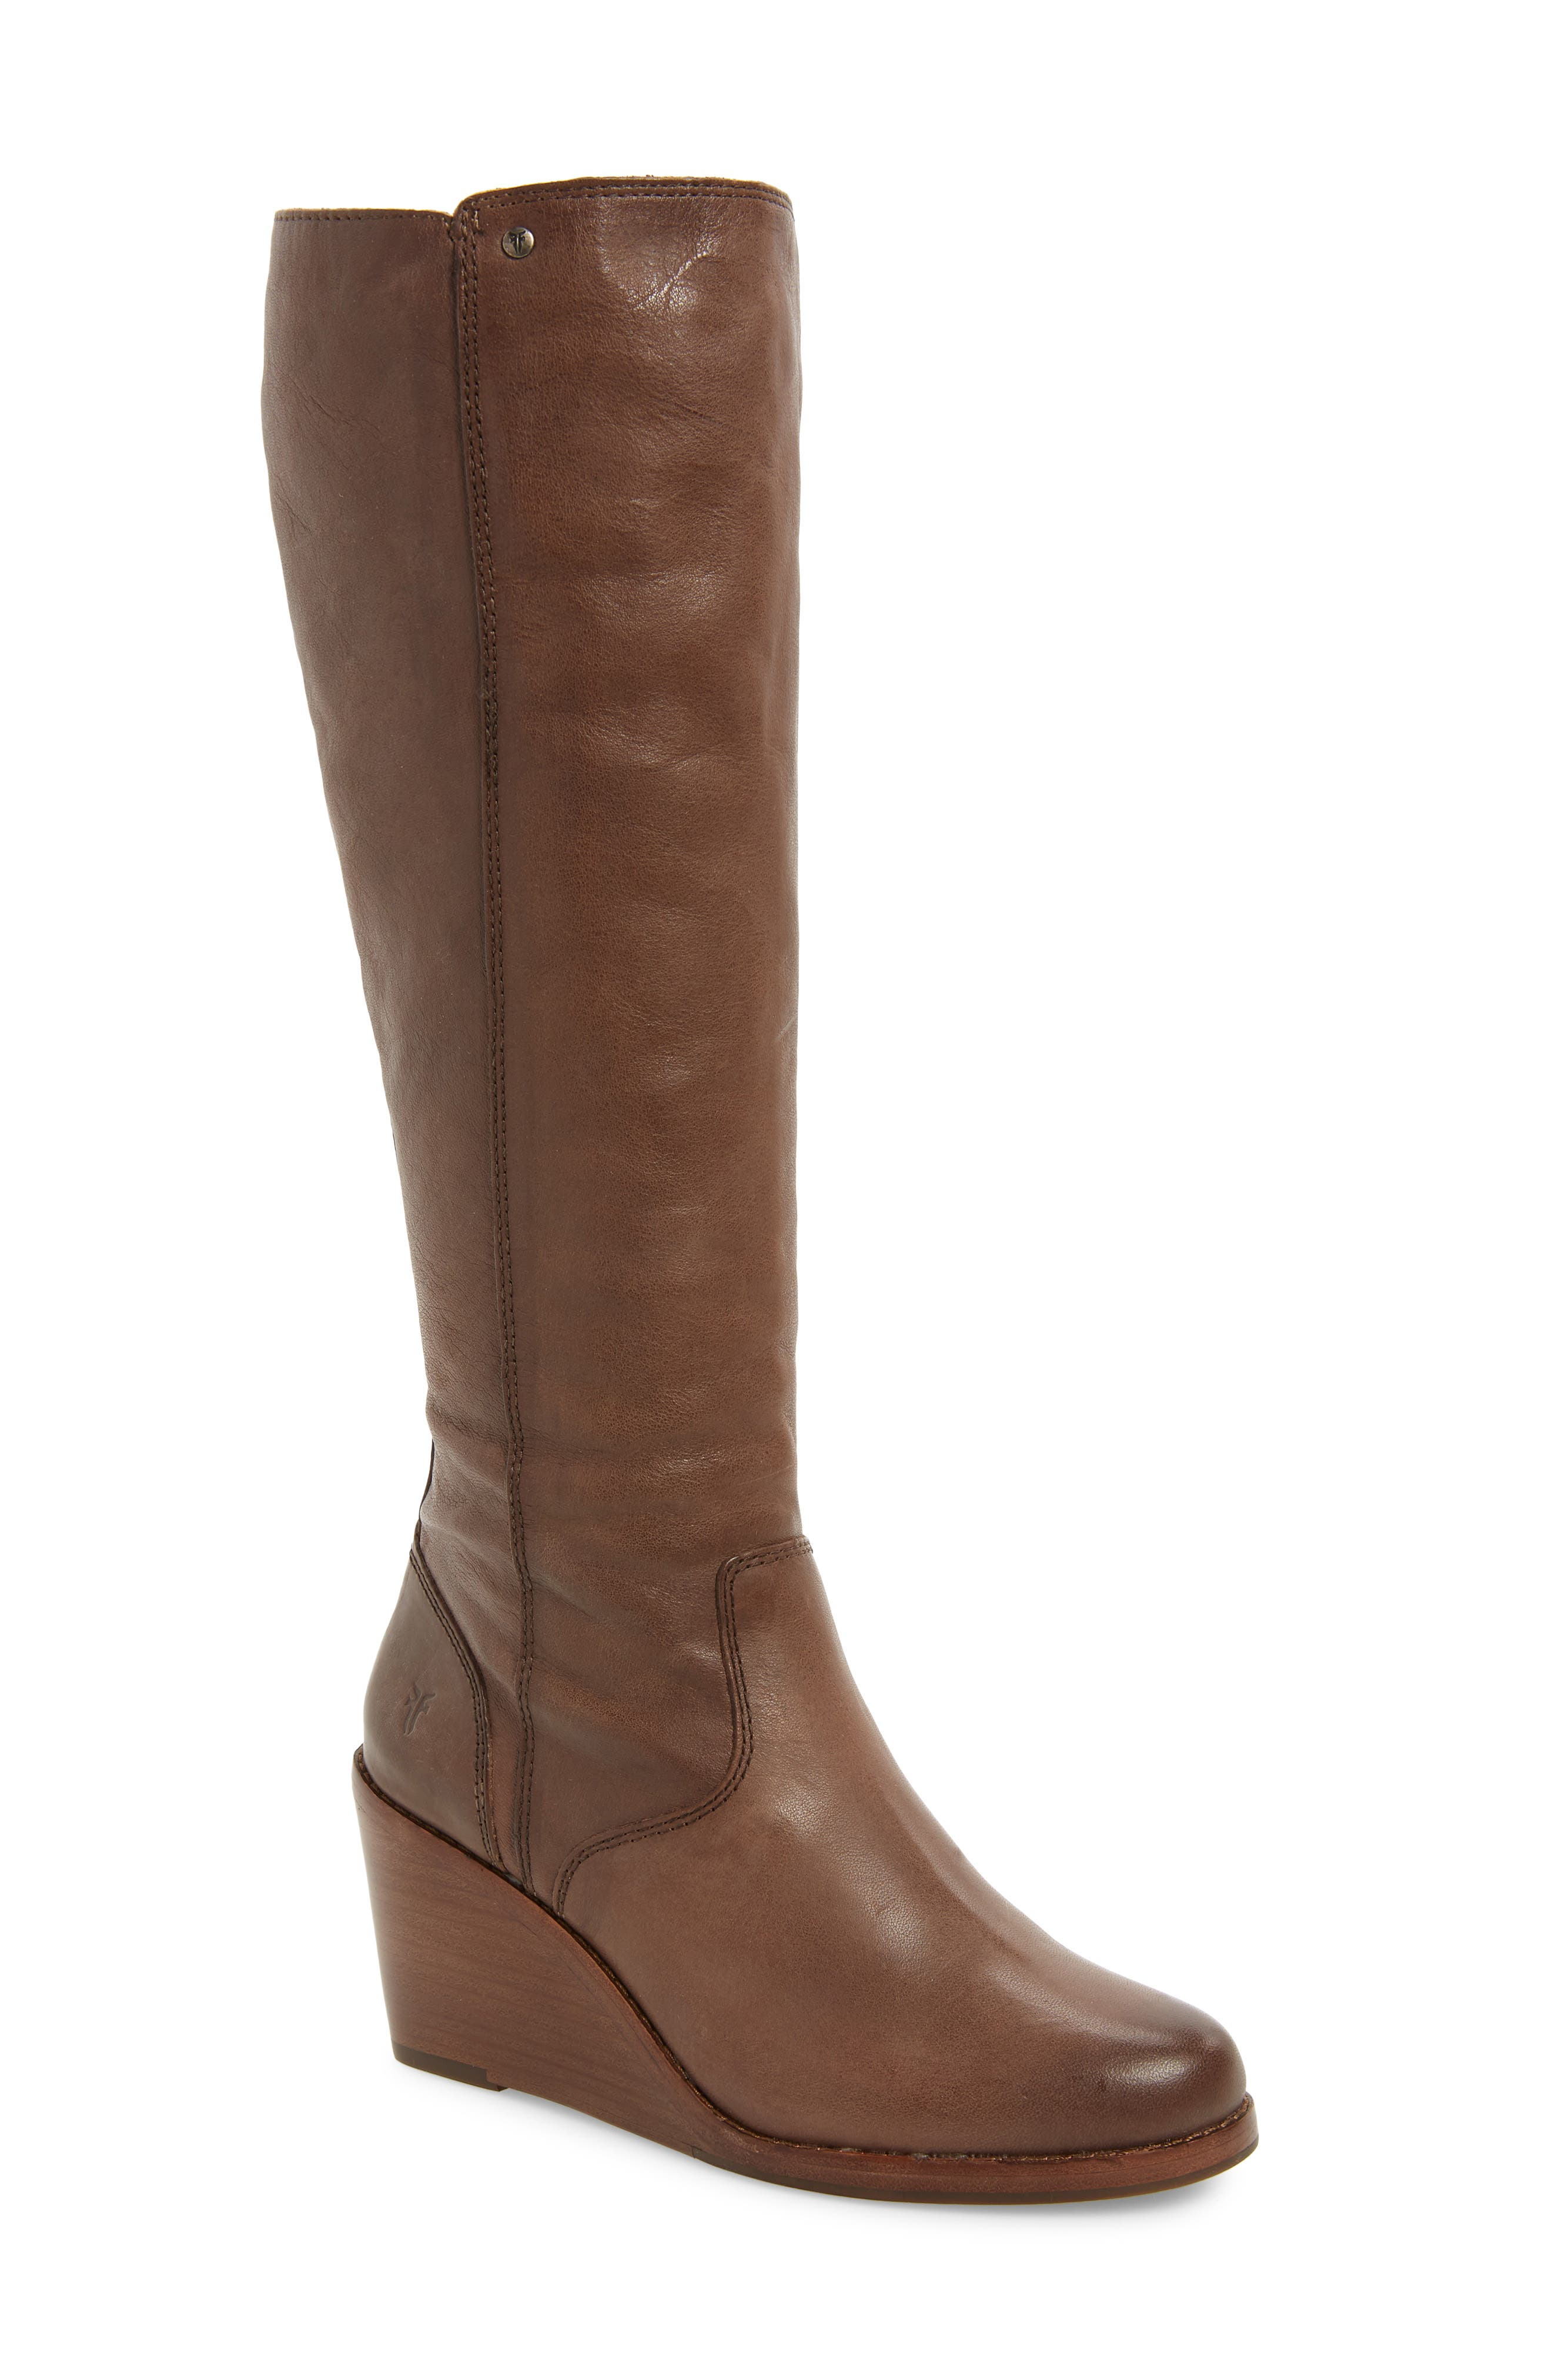 Frye Emma Knee High Wedge Boot, Brown